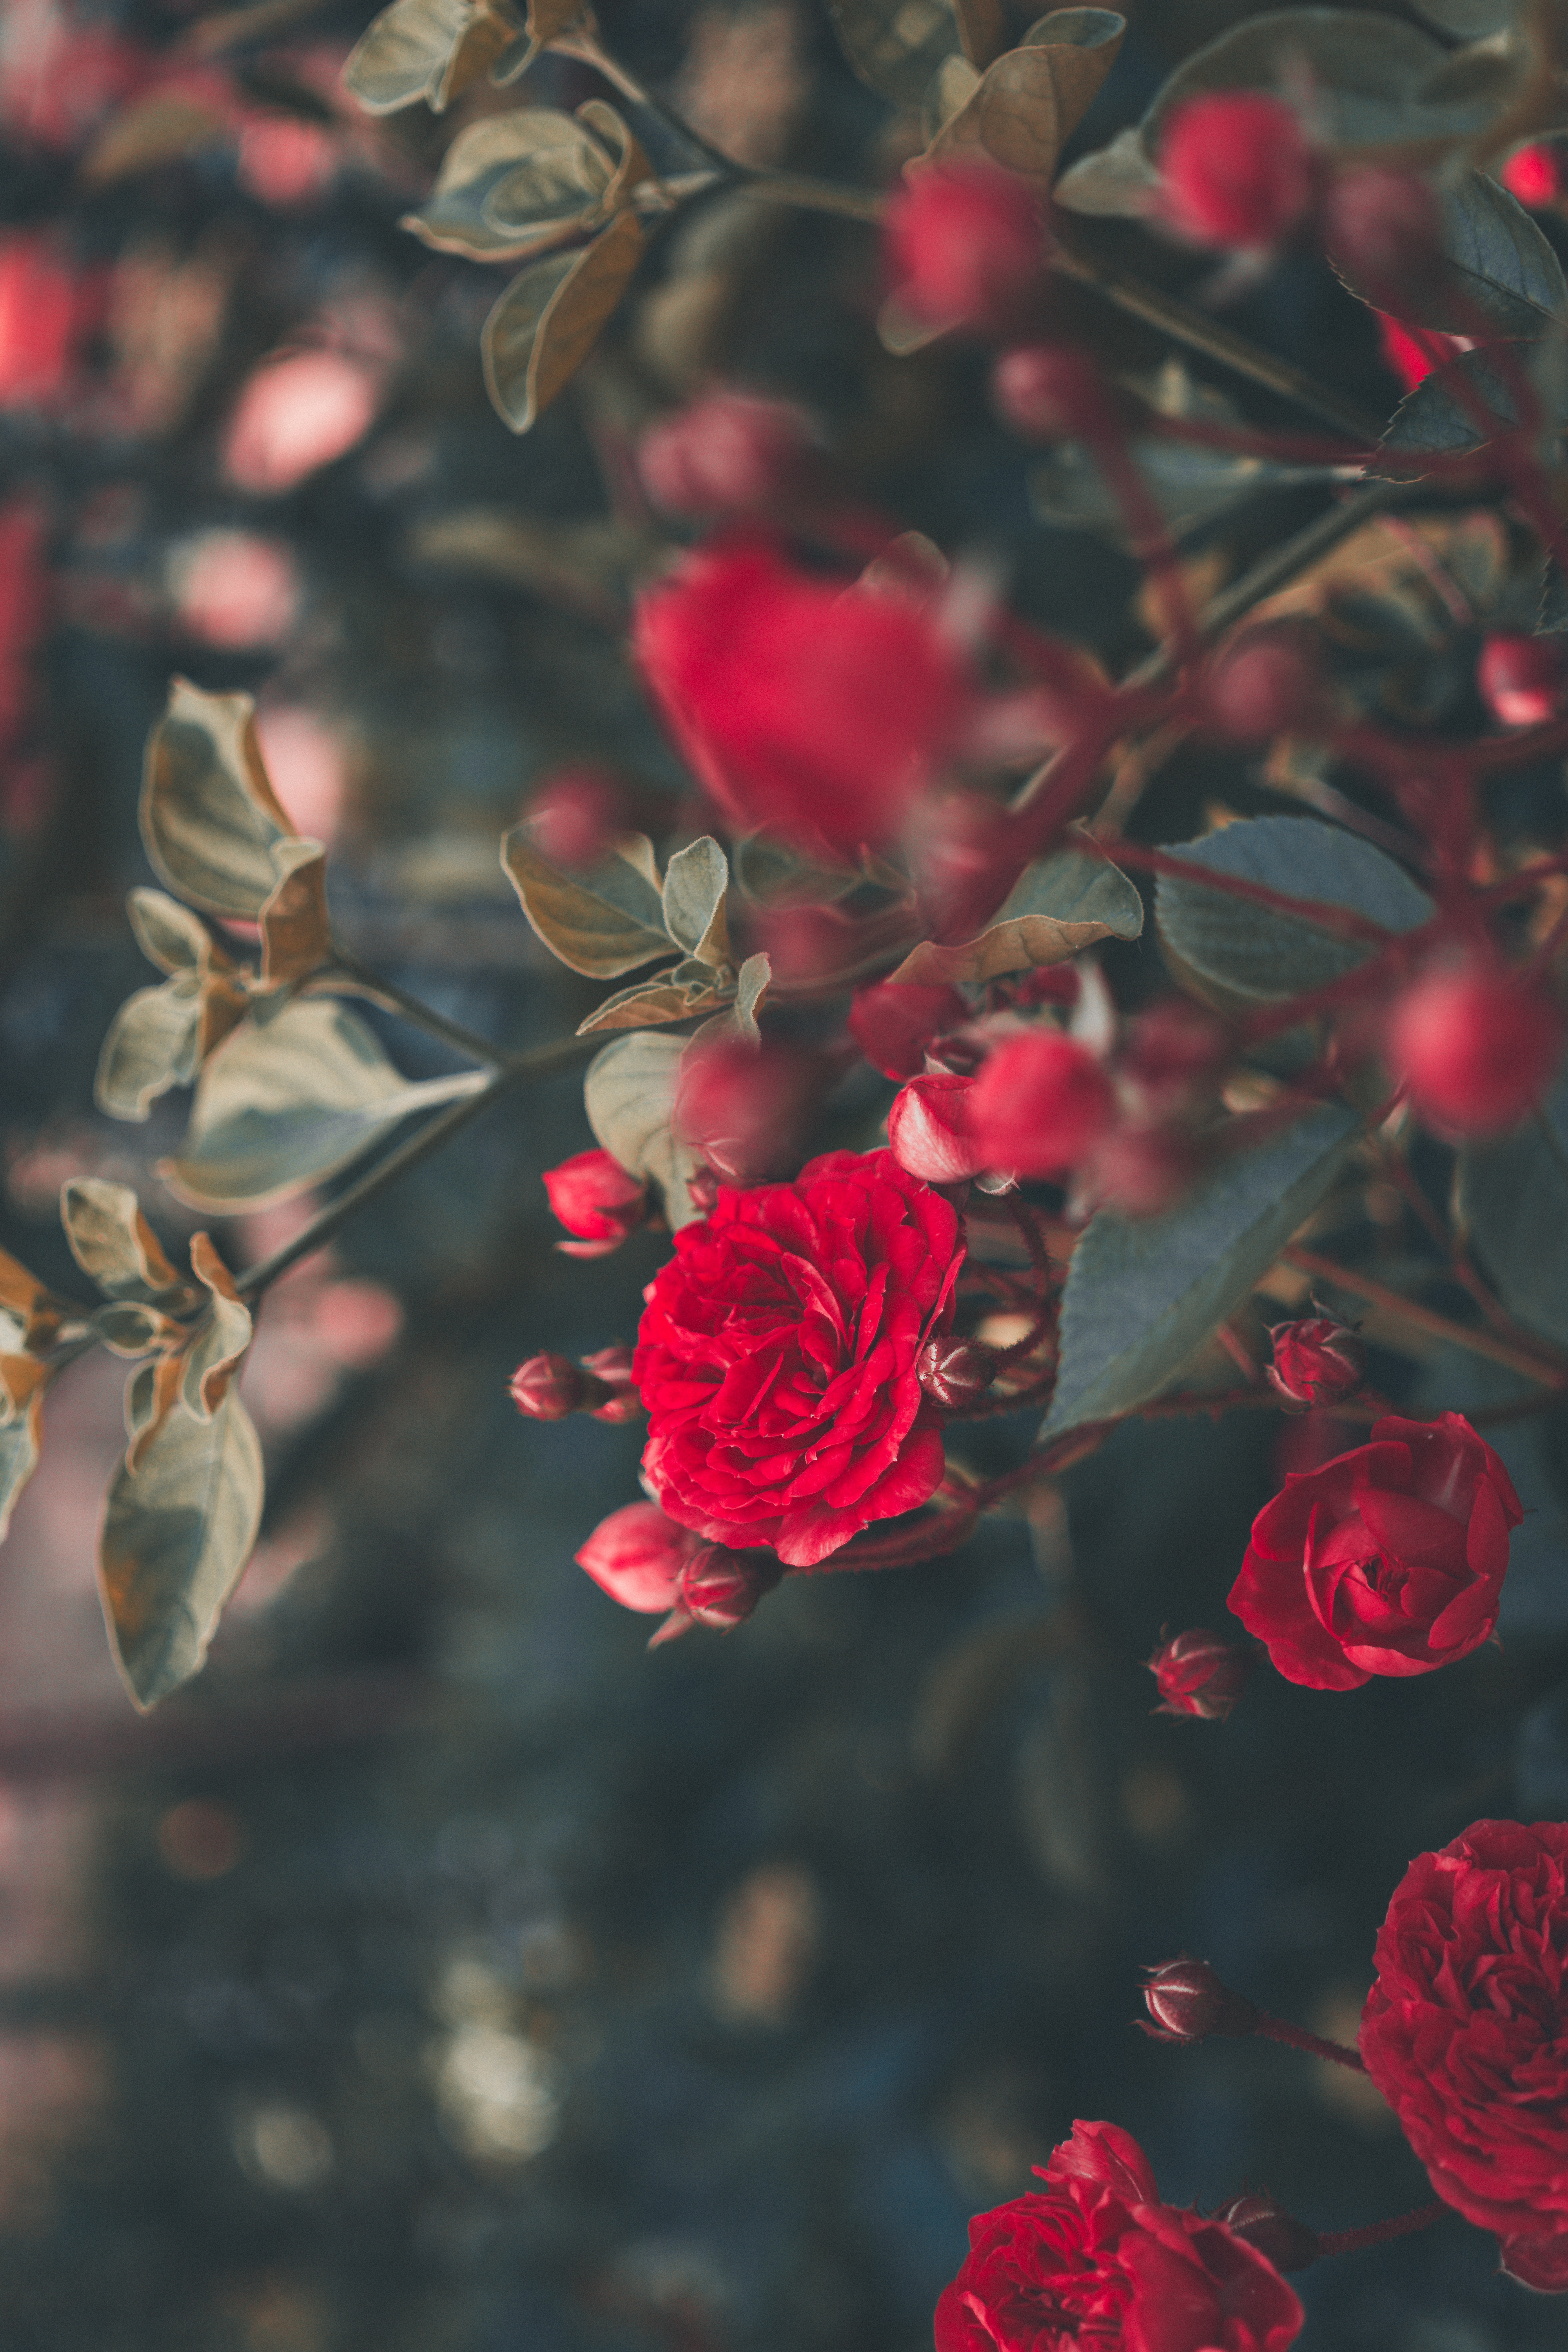 113839 download wallpaper Smooth, Flowers, Bush, Rose Flower, Rose, Blur, Bloom, Flowering, Garden screensavers and pictures for free